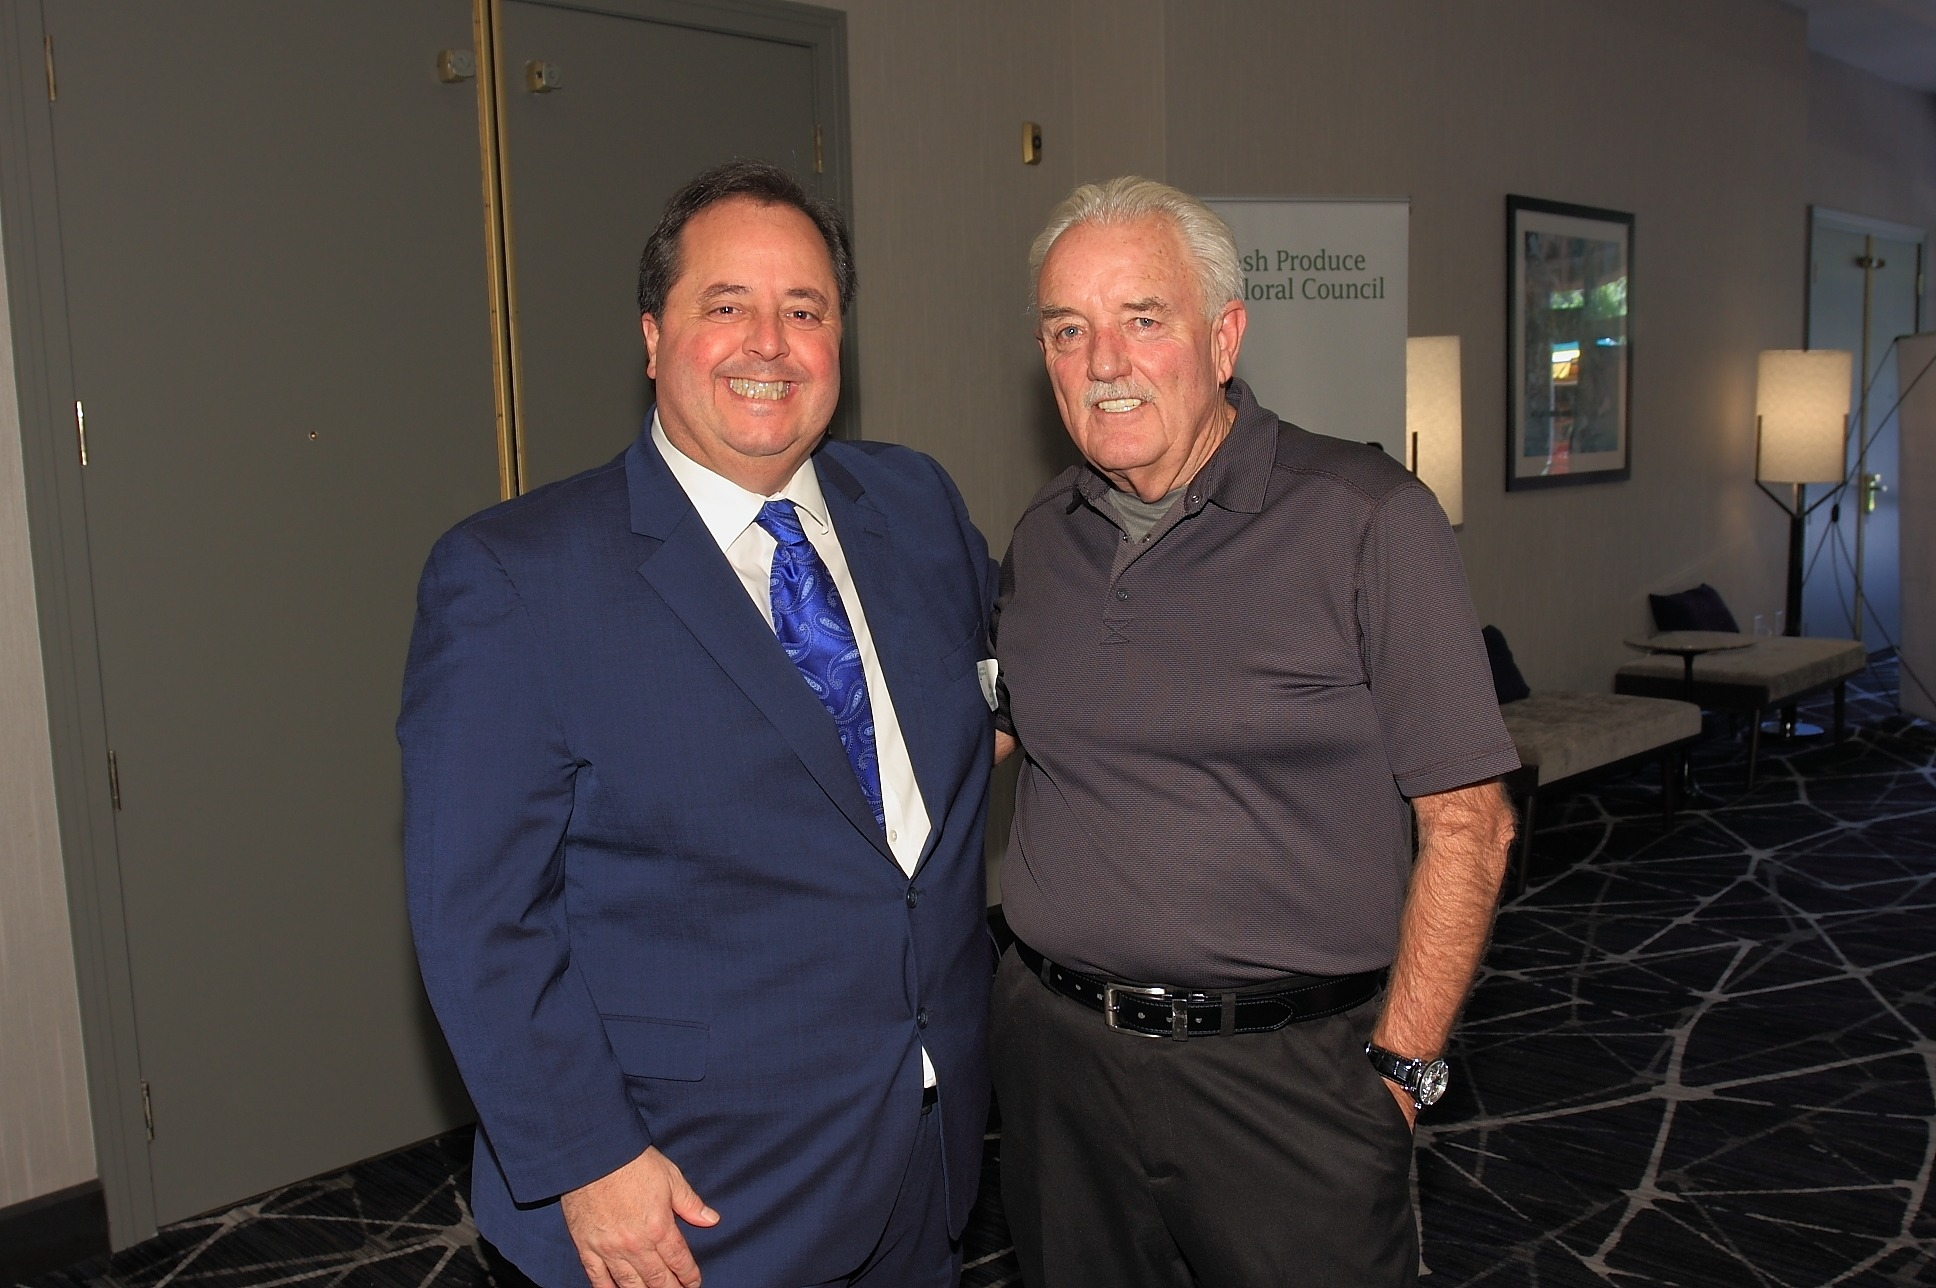 Gary Caloroso of the Giumarra Companies and Pat McDowell of Perimeter Sales & Merchandising